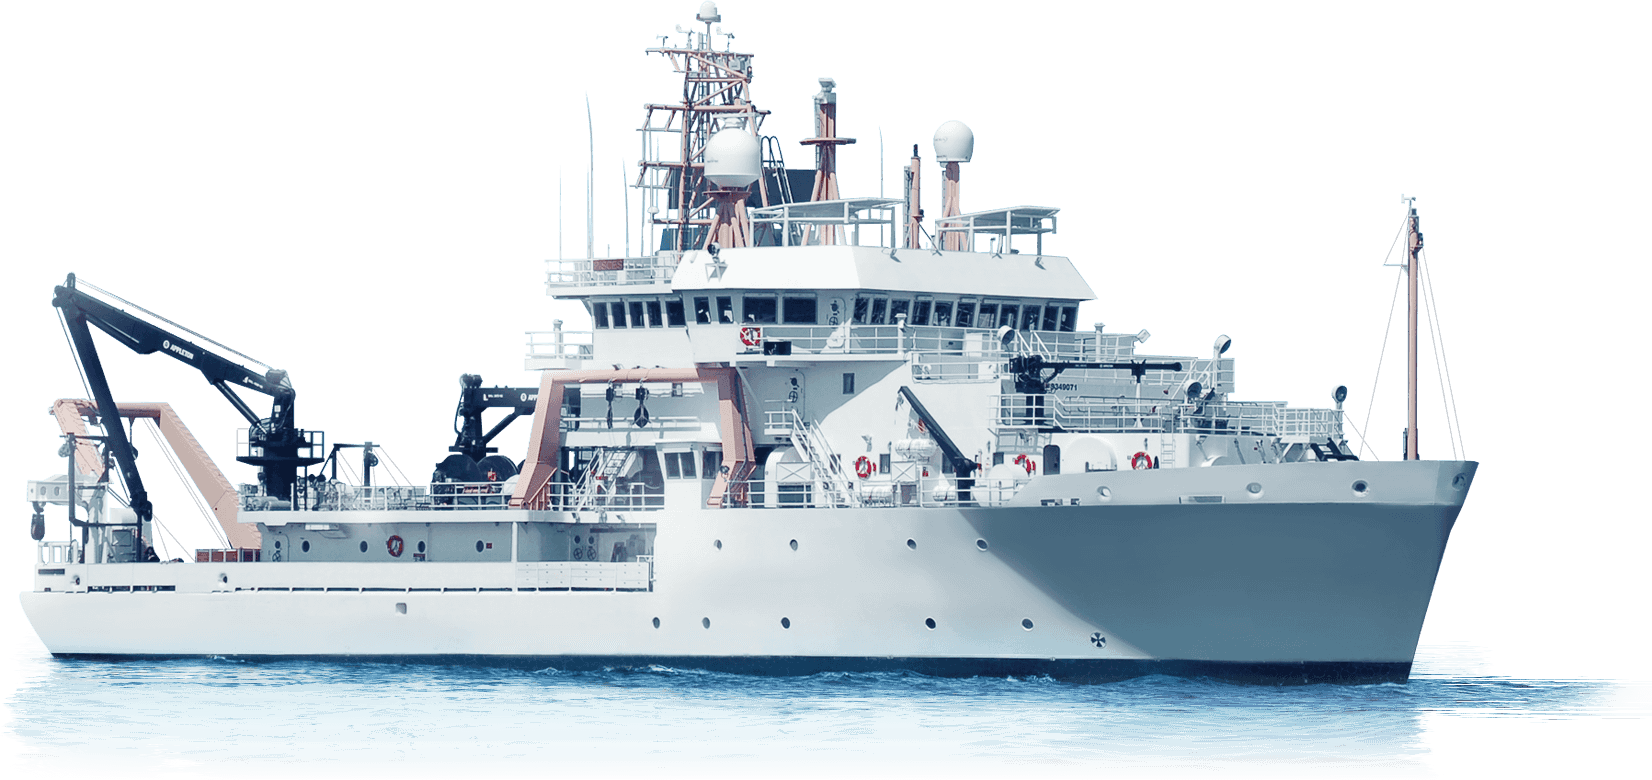 Ship Transparent PNG, Ships And Yacht, Cruise Ship Clipart ...